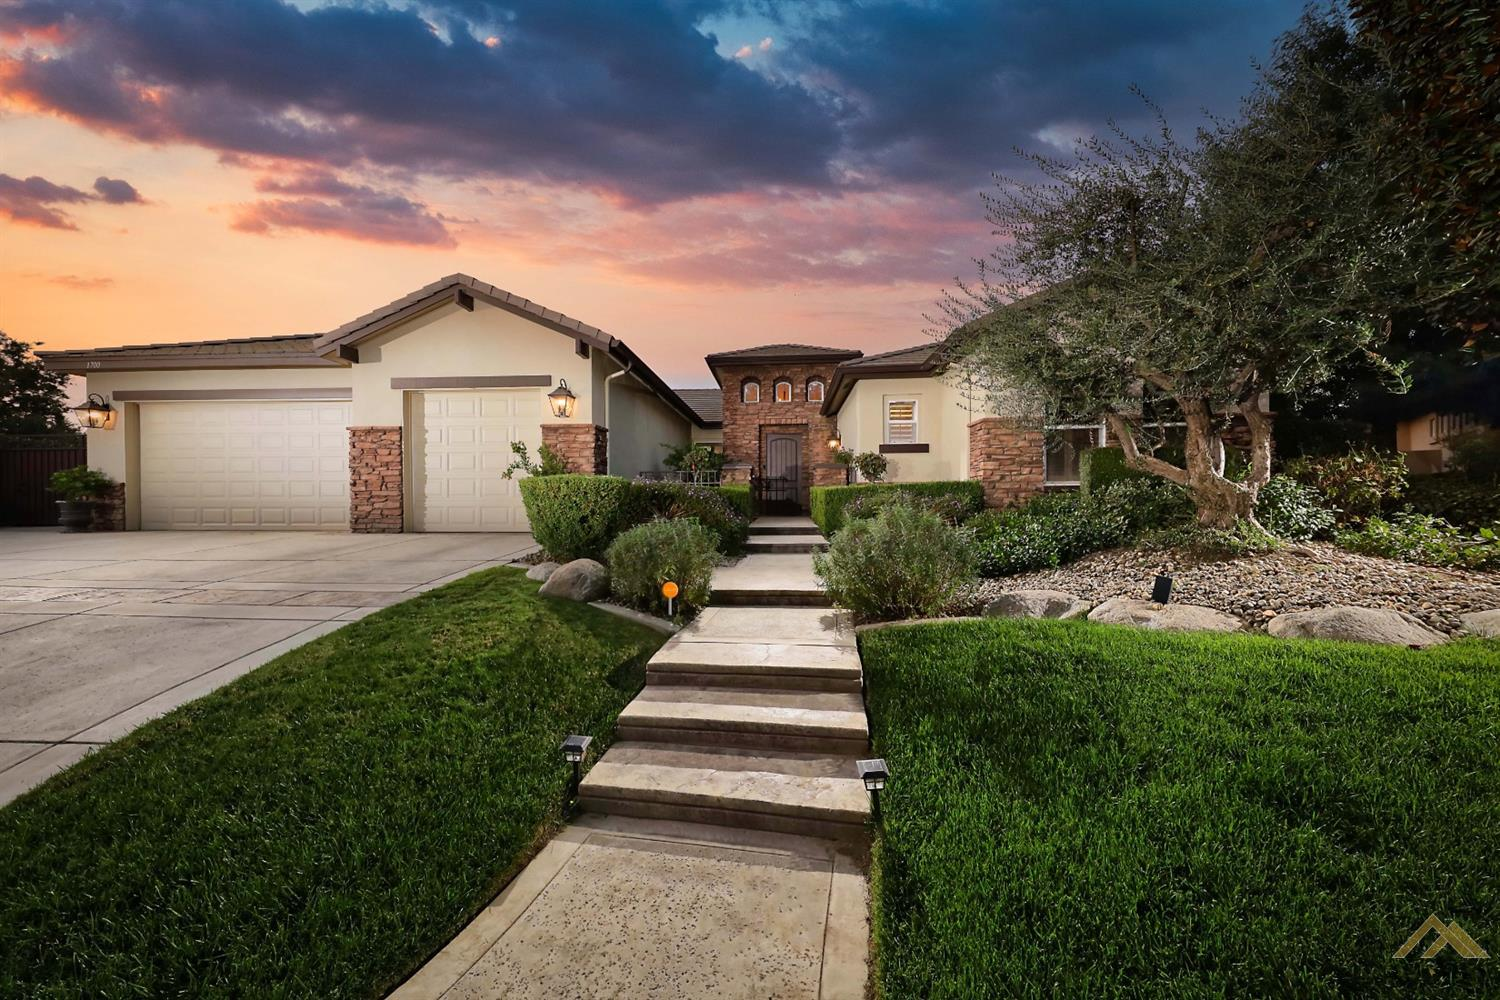 Photo of 1700 Briercliff Court, Bakersfield, CA 93311